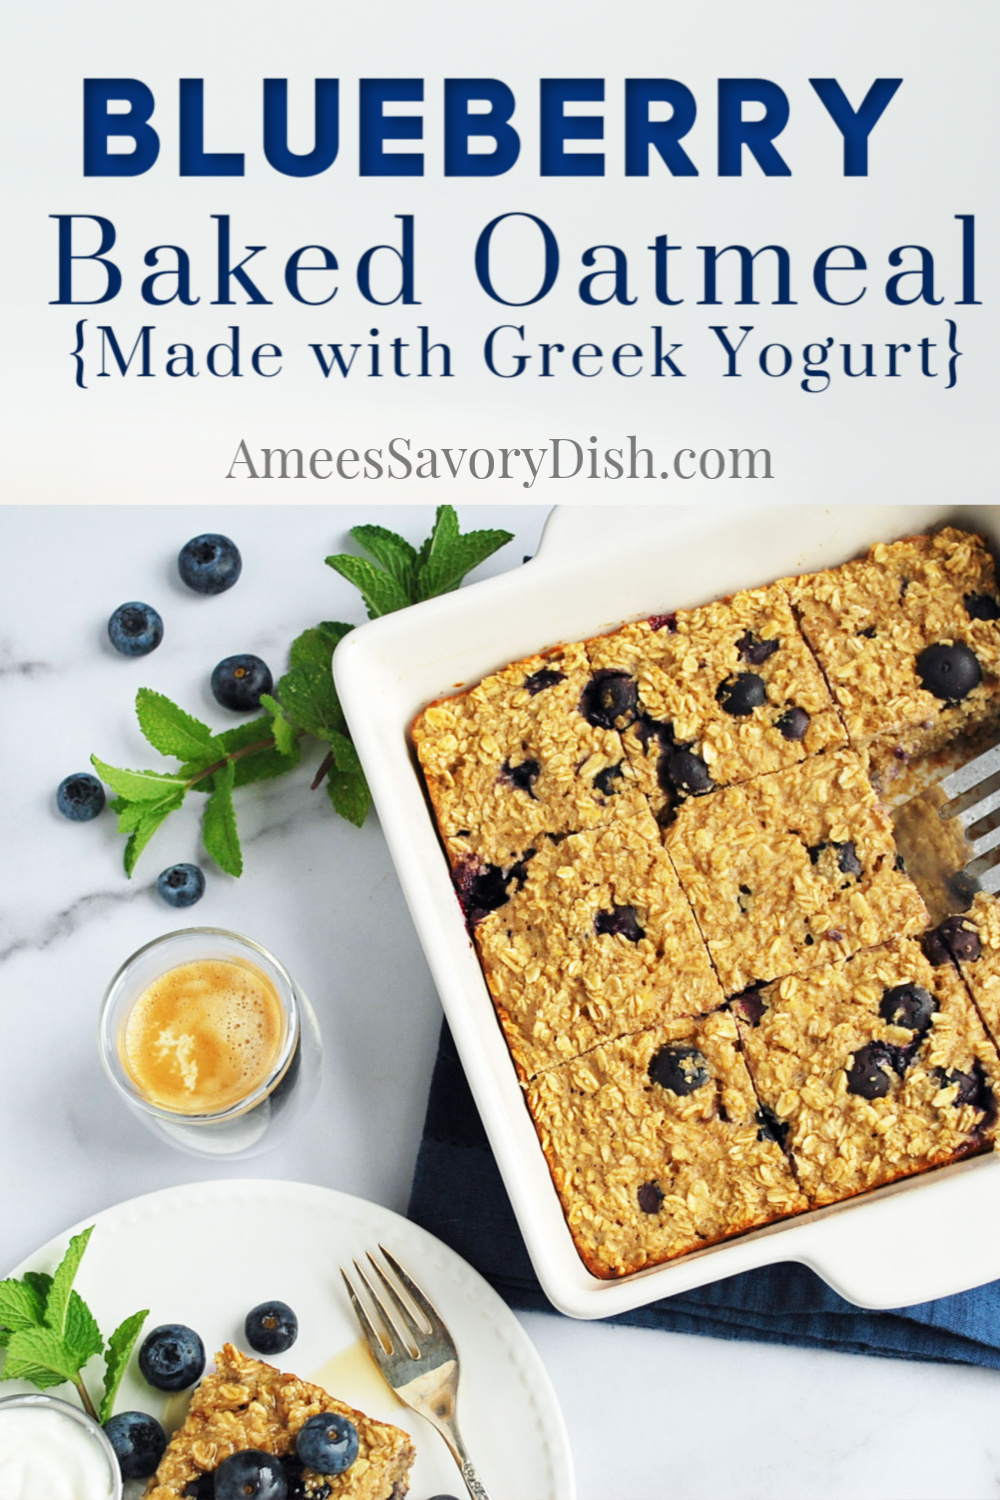 The best easy baked oatmeal recipe using fresh blueberries, oats, protein-packed Greek yogurt, and oat milk. So simple and delicious!! #bakedoatmeal #blueberryrecipe #bakedoats #breakfastrecipe via @Ameecooks